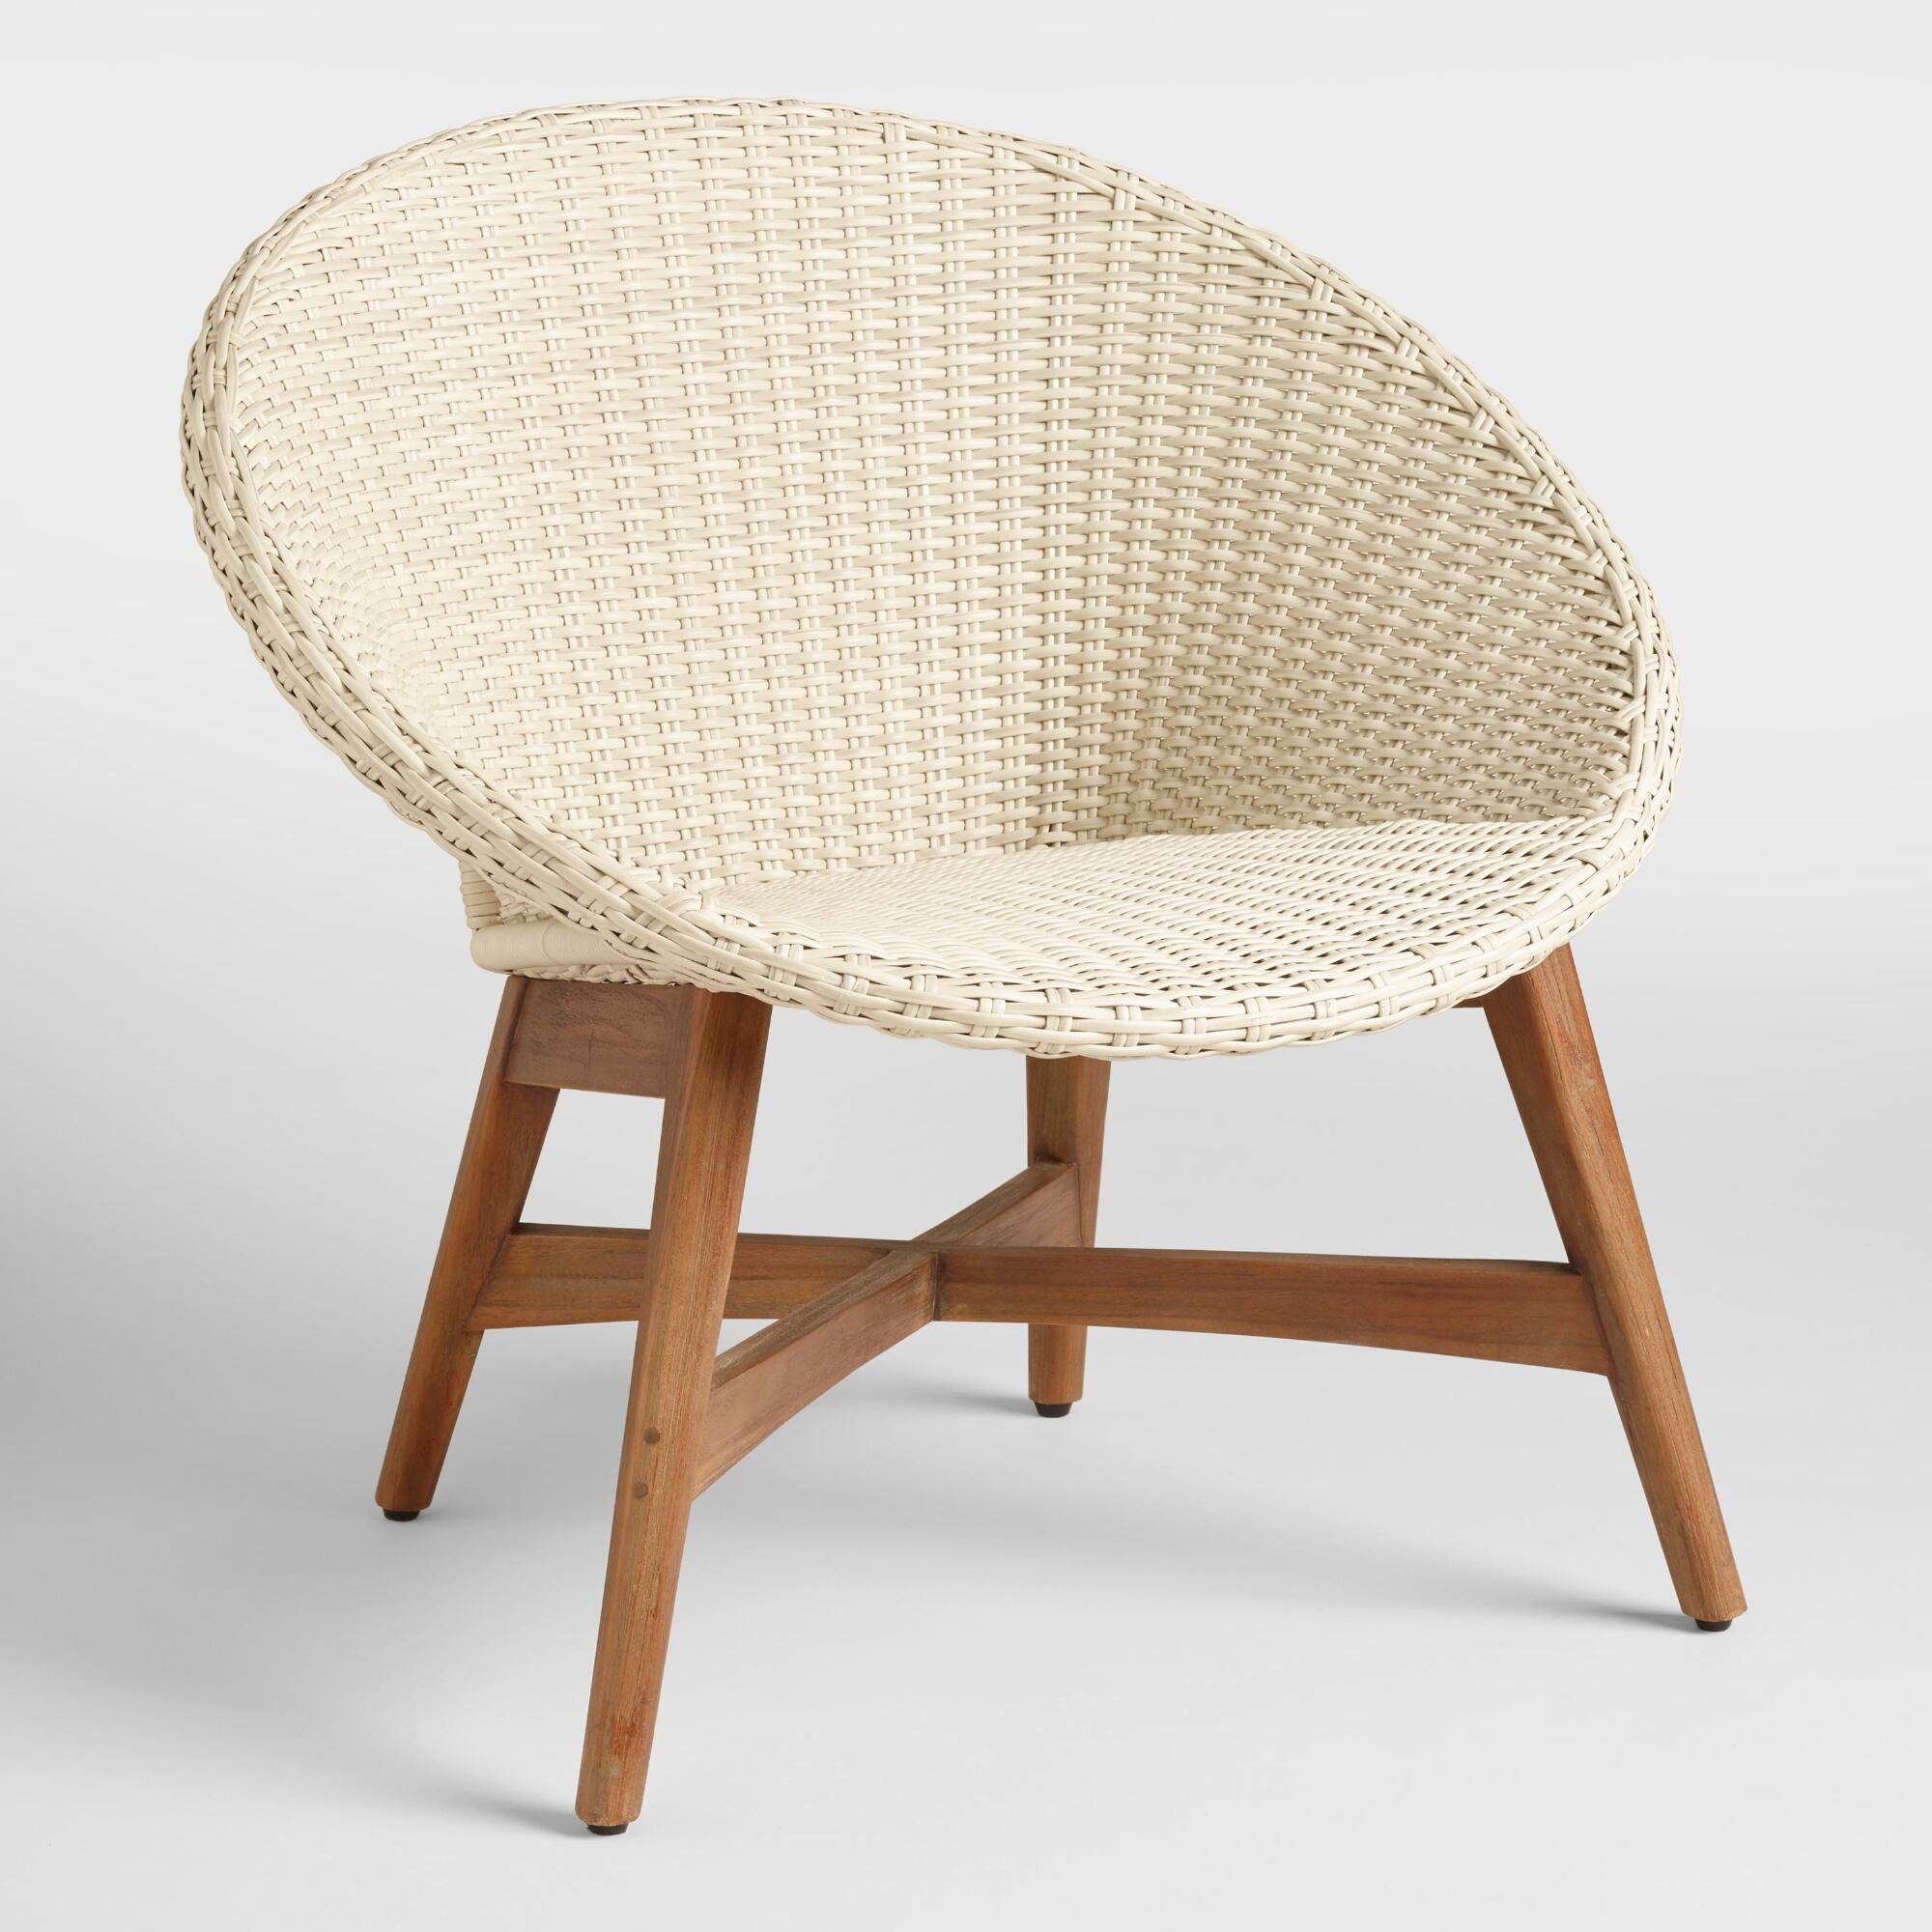 Round All Weather Wicker Vernazza Chairs Set of 2  home